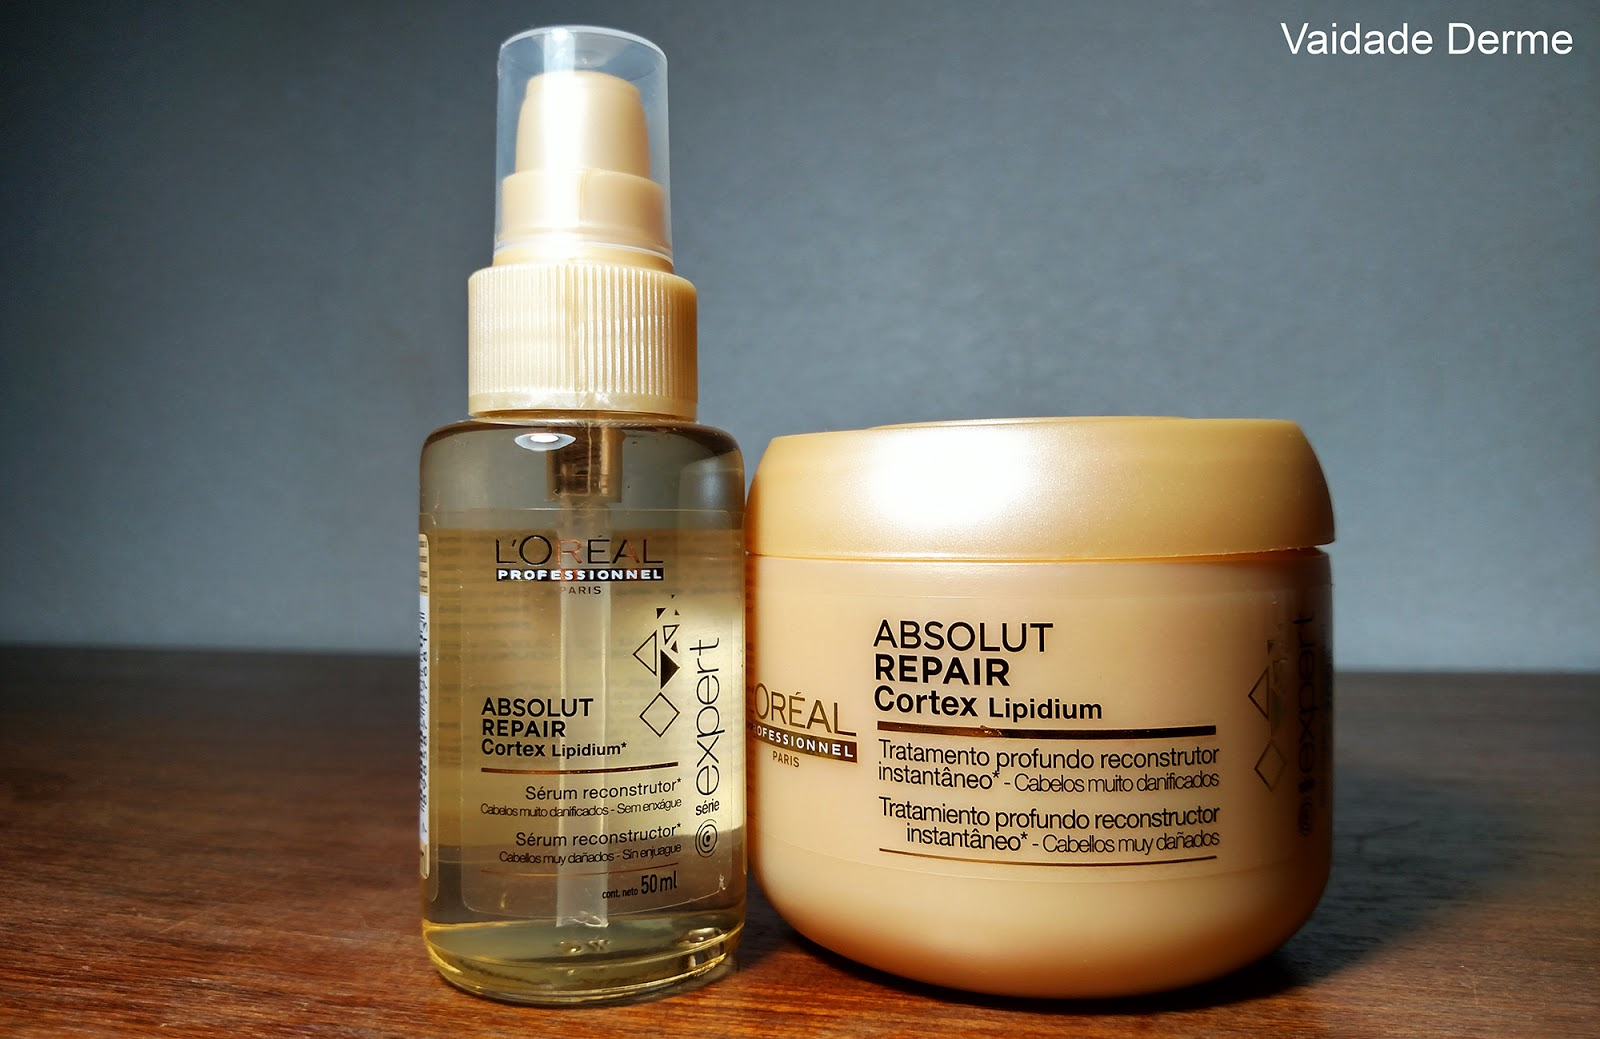 L'Oréal Professionnel Absolut Repair Lipidium